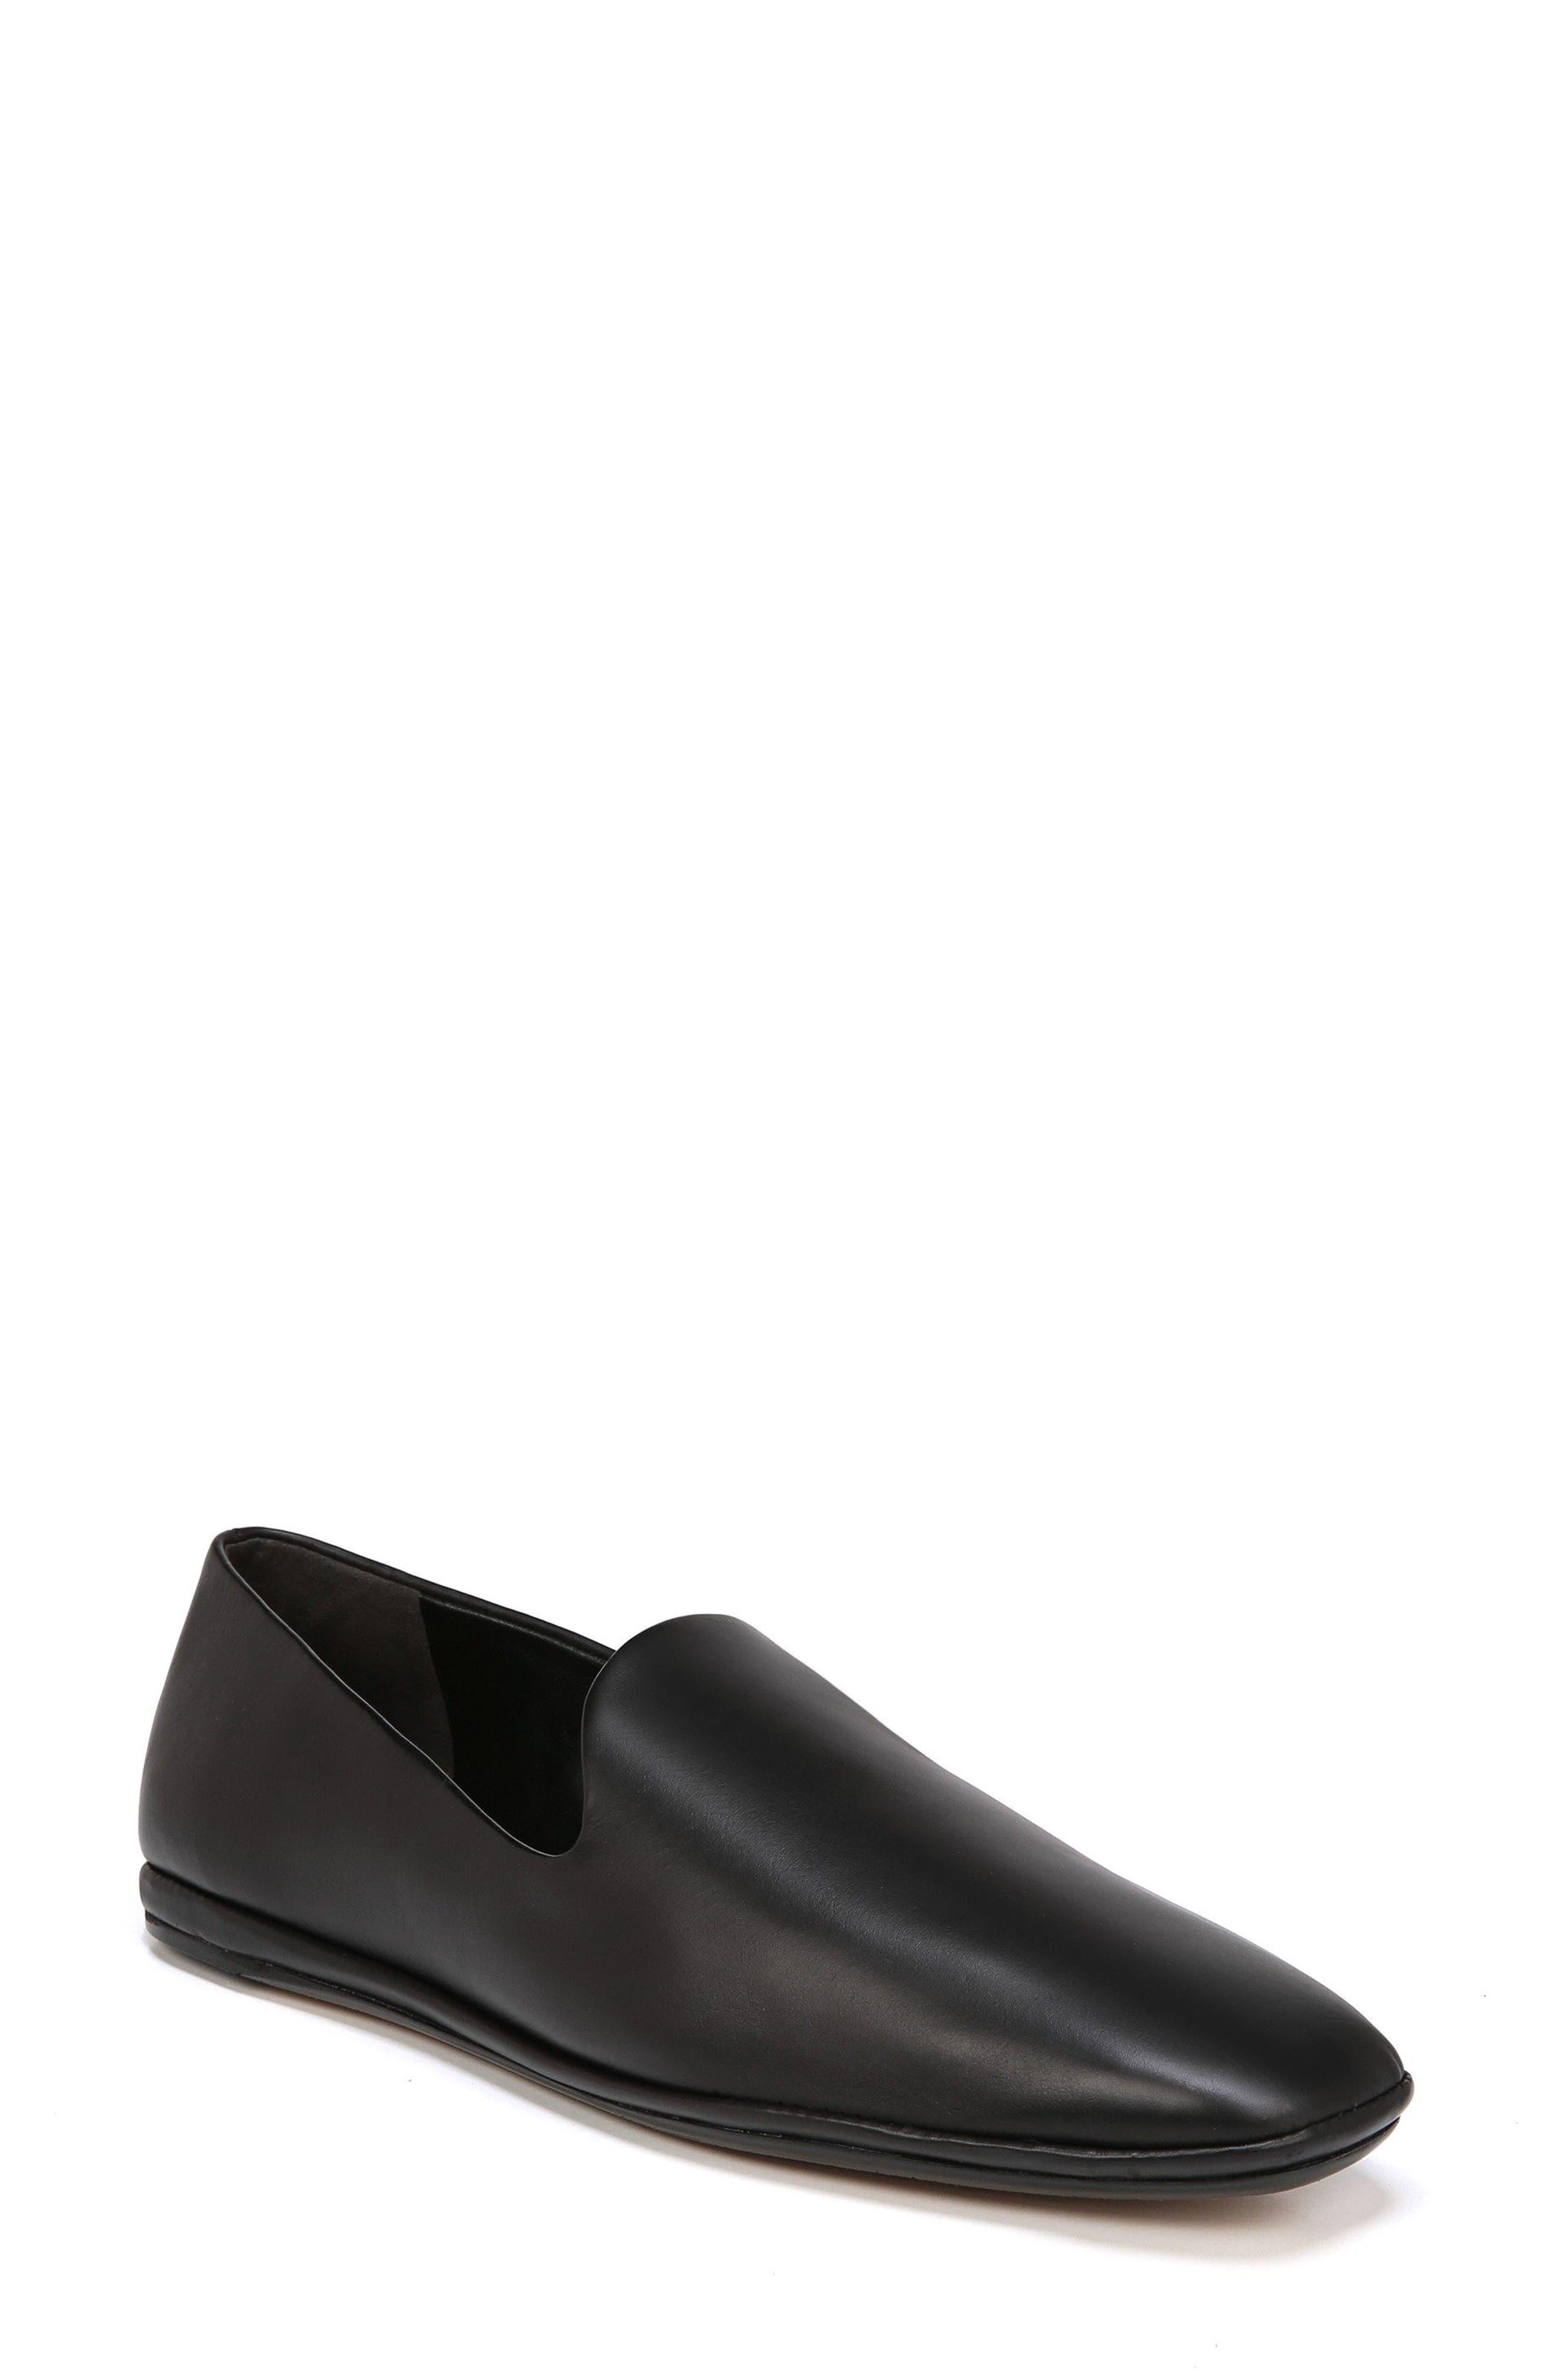 Paz Venetian Loafer,                         Main,                         color, BLACK